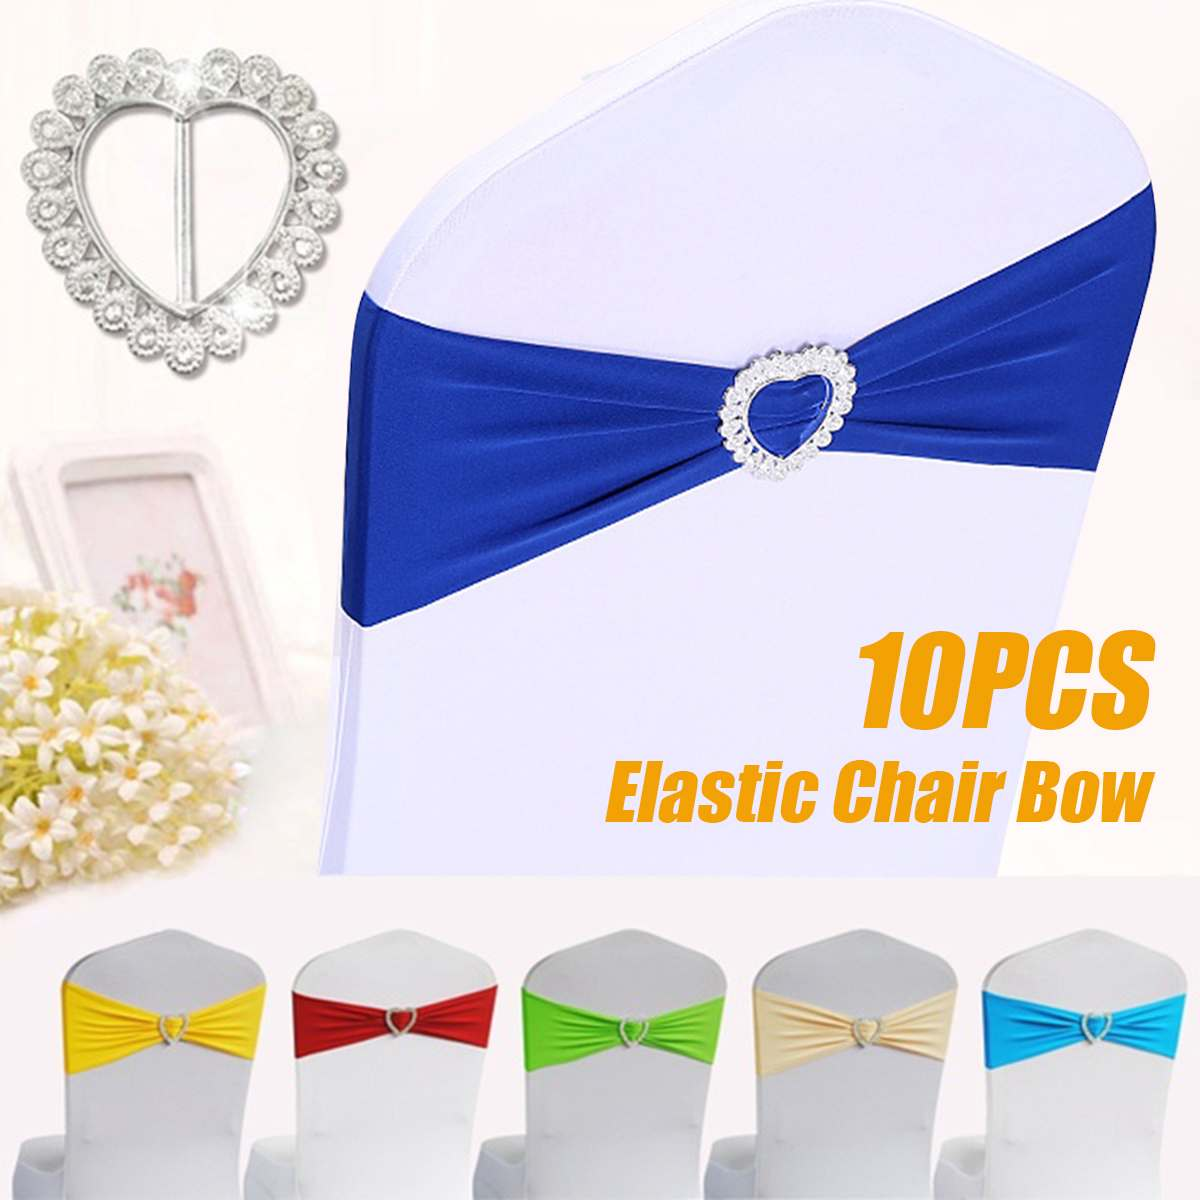 10pcs Silver Heart Buckle Stretch Spandex Chair Sash Band Wedding Chair Bow Tie Polyester For Wedding Hotel Banquet Decor